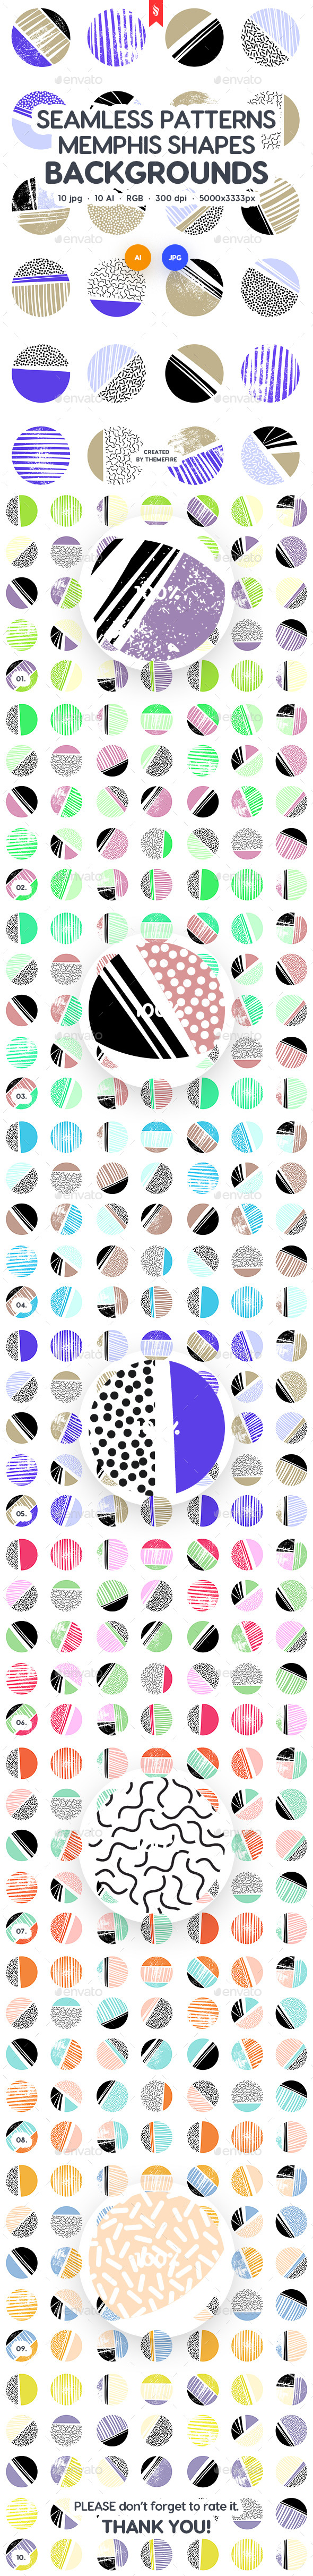 Seamless Patterns Circle Shapes in Memphis Style Backgrounds - Patterns Backgrounds